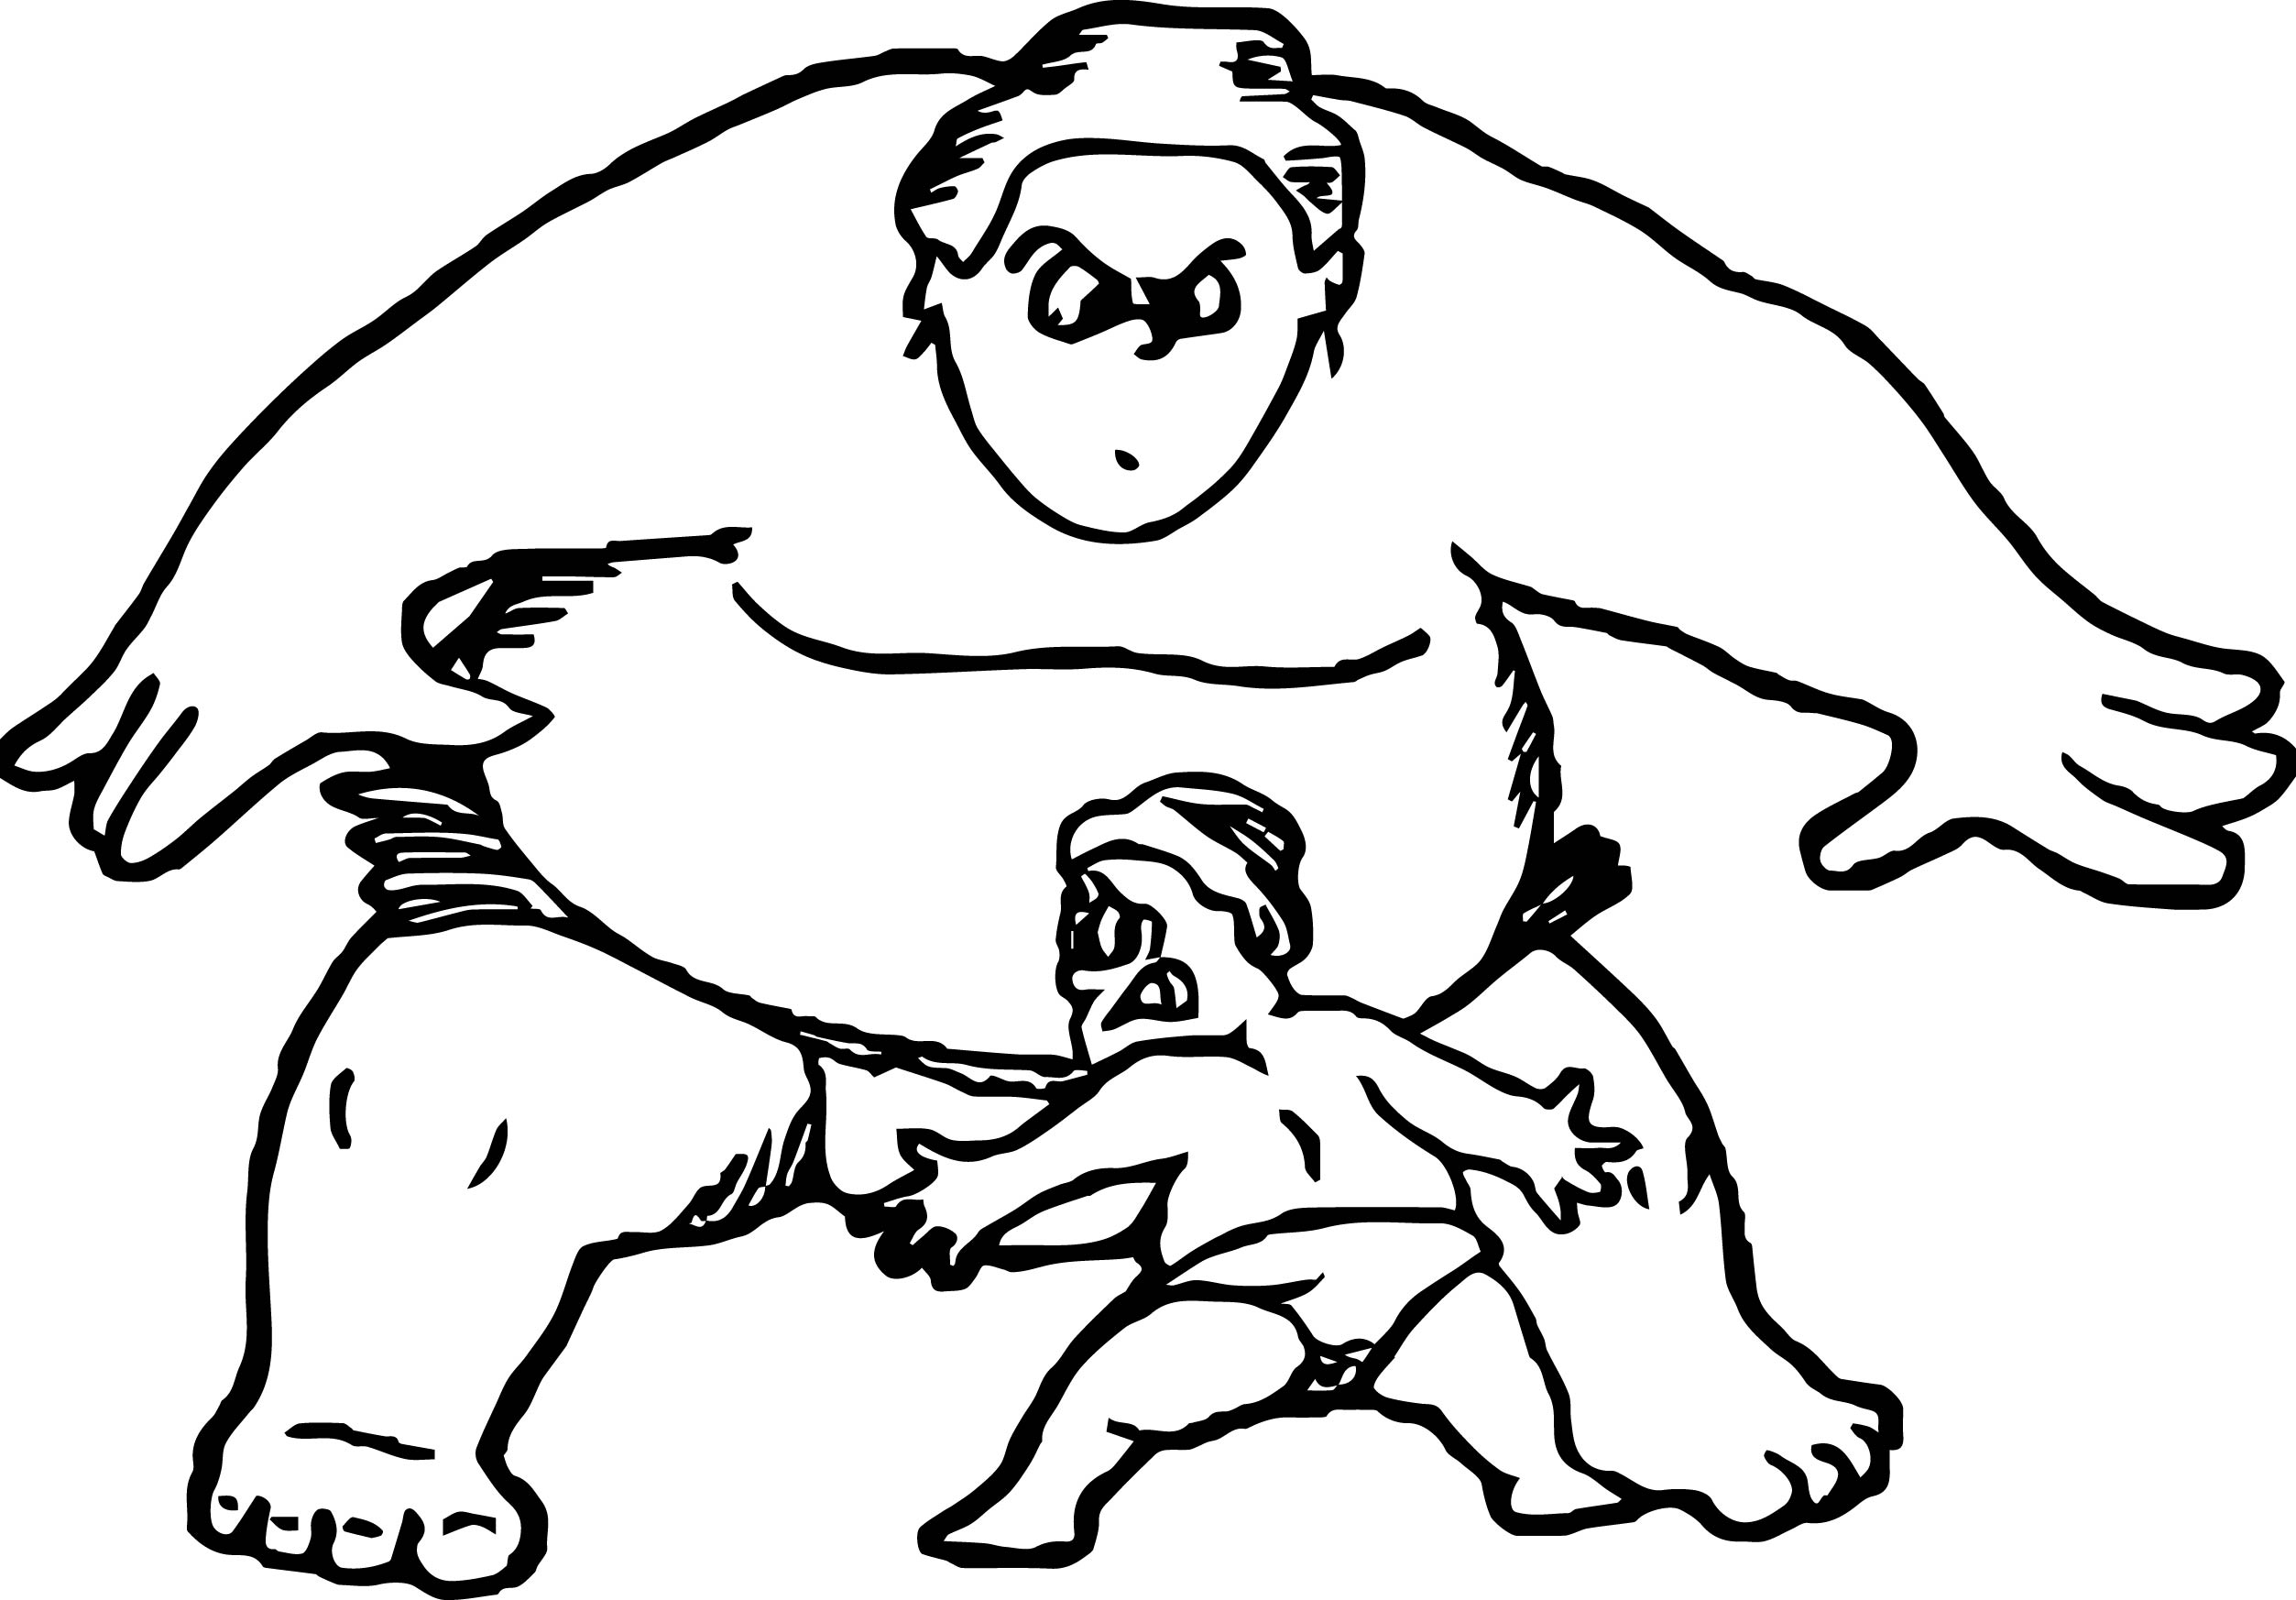 Sport Graphics Sumo Wrestling Coloring Page | Wecoloringpage.com